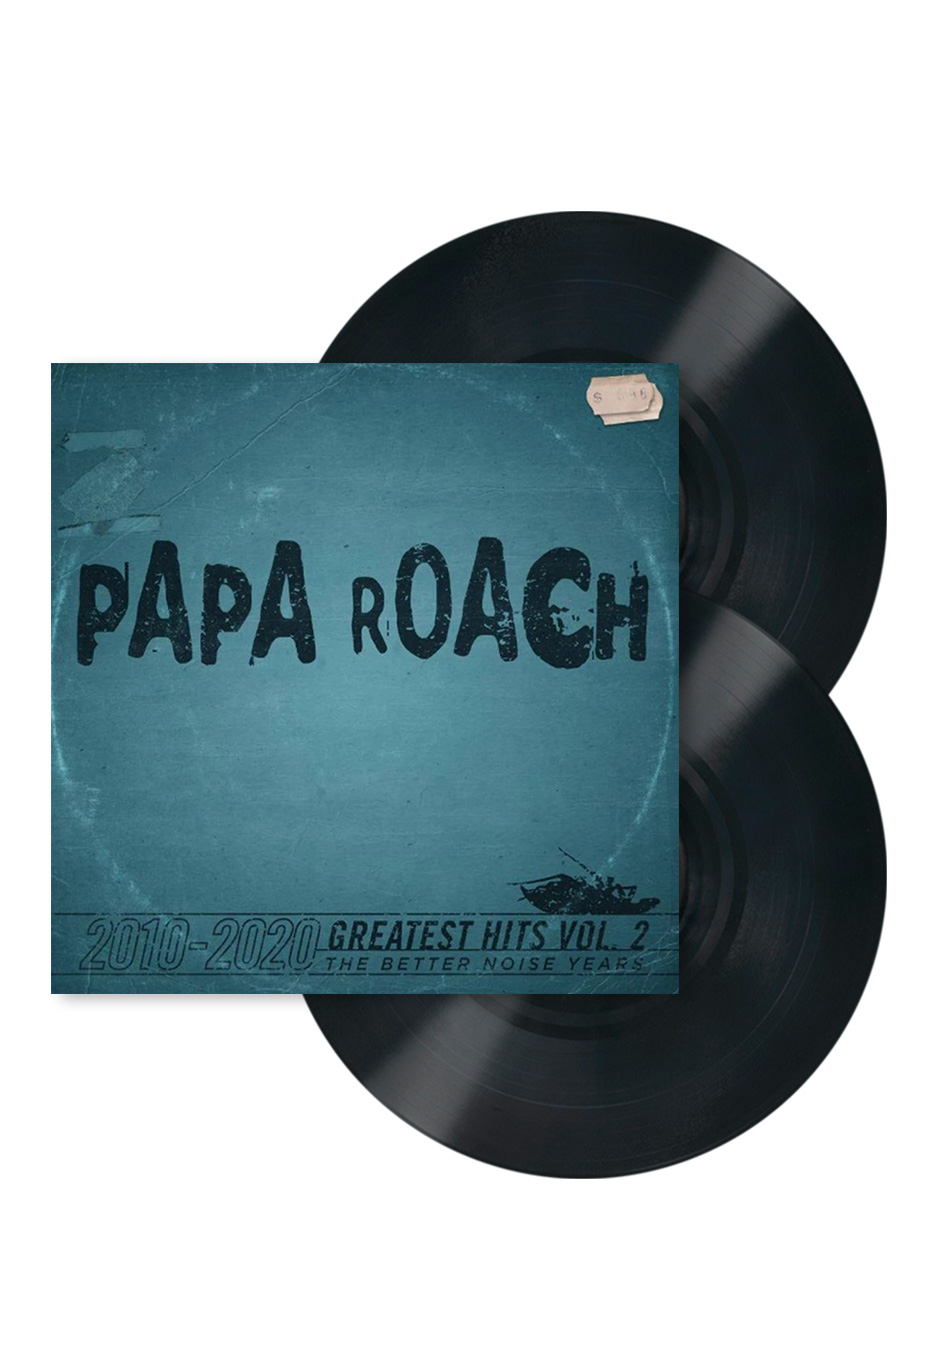 Papa Roach - Greatest Hits Vol.2 The Better Noise Years - Vinyl